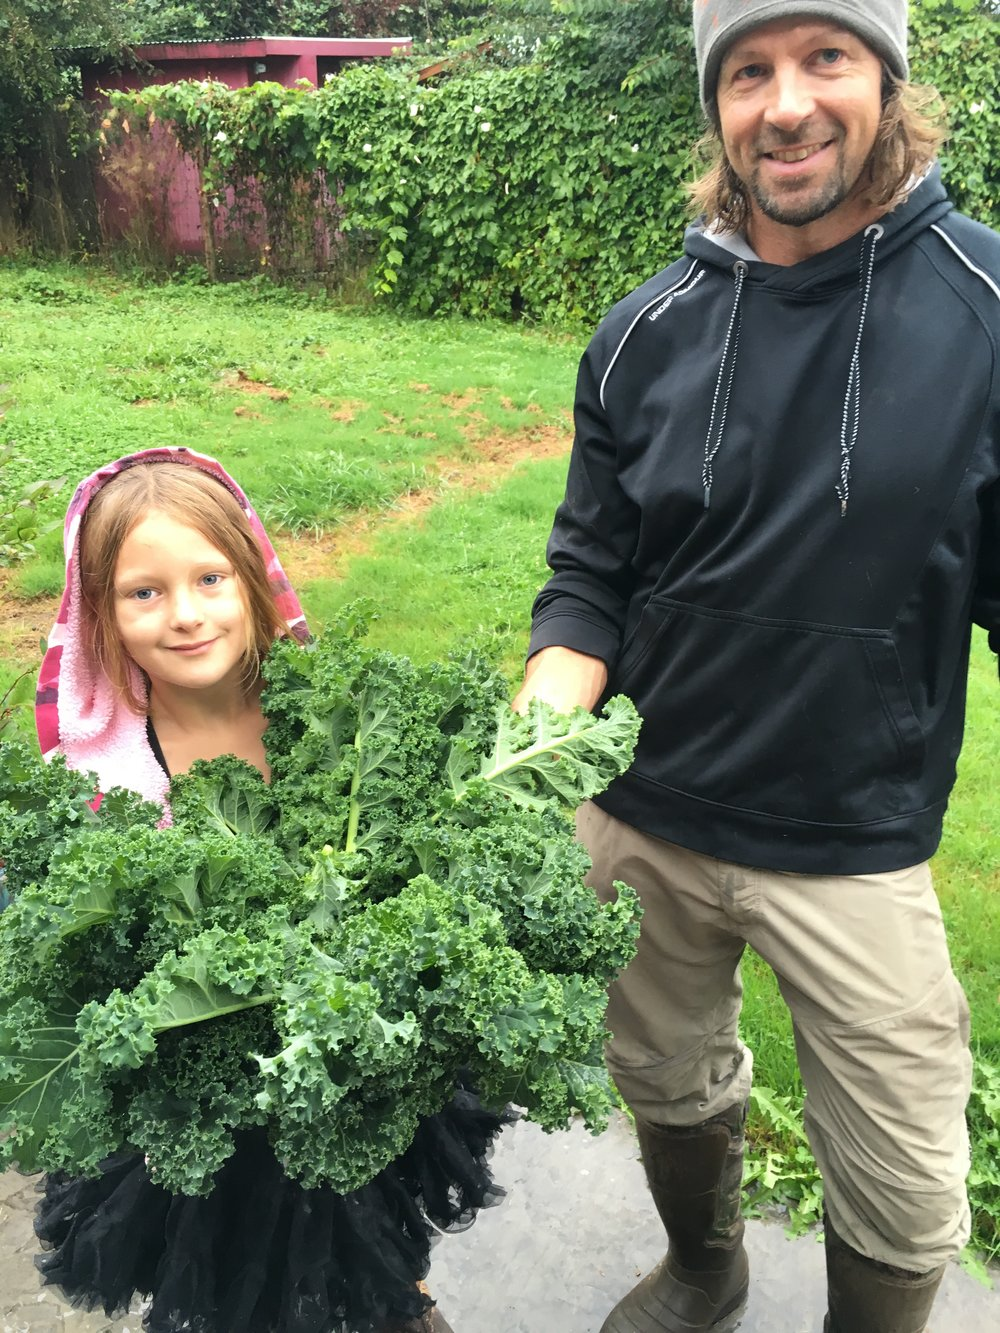 Ryan and Pailey after a kale harvest.